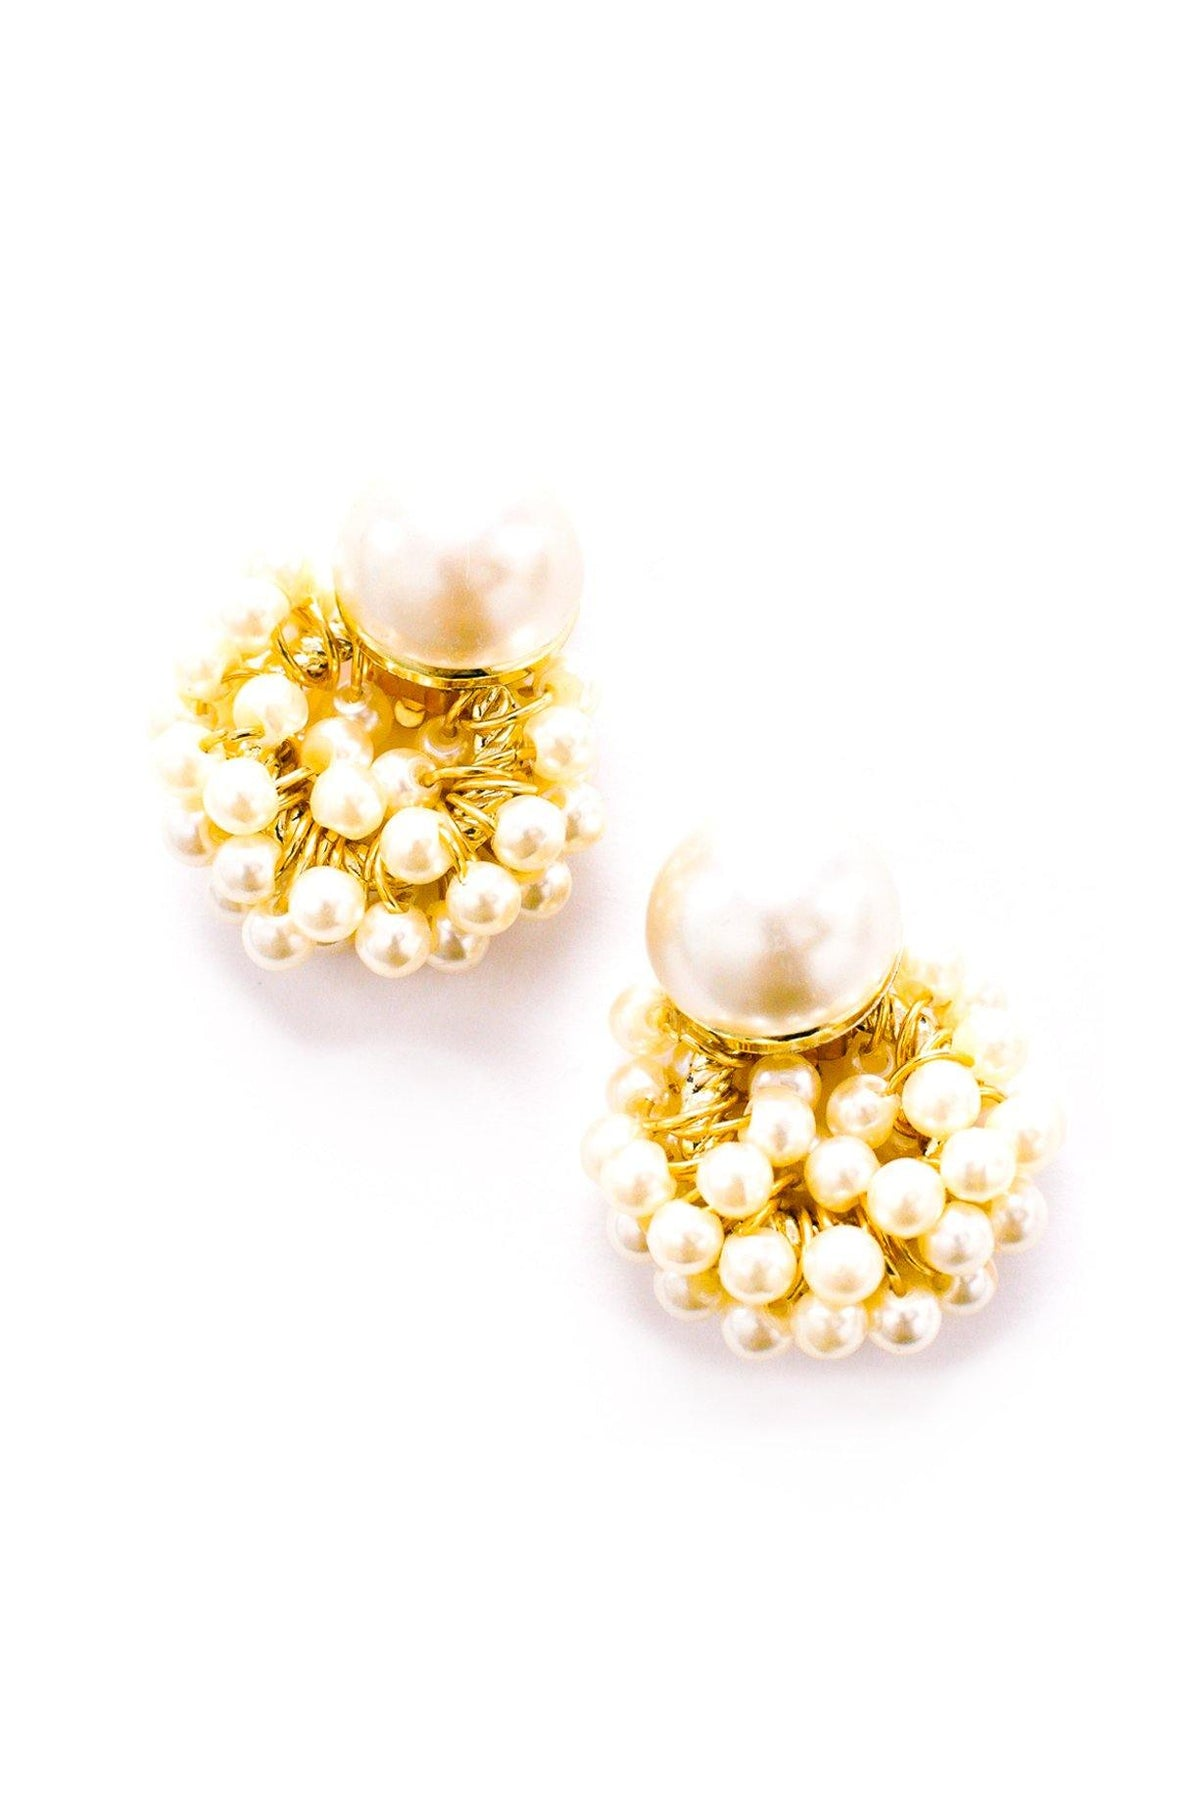 Vintage Pearl Statement Clip-On Earrings from Sweet & Spark